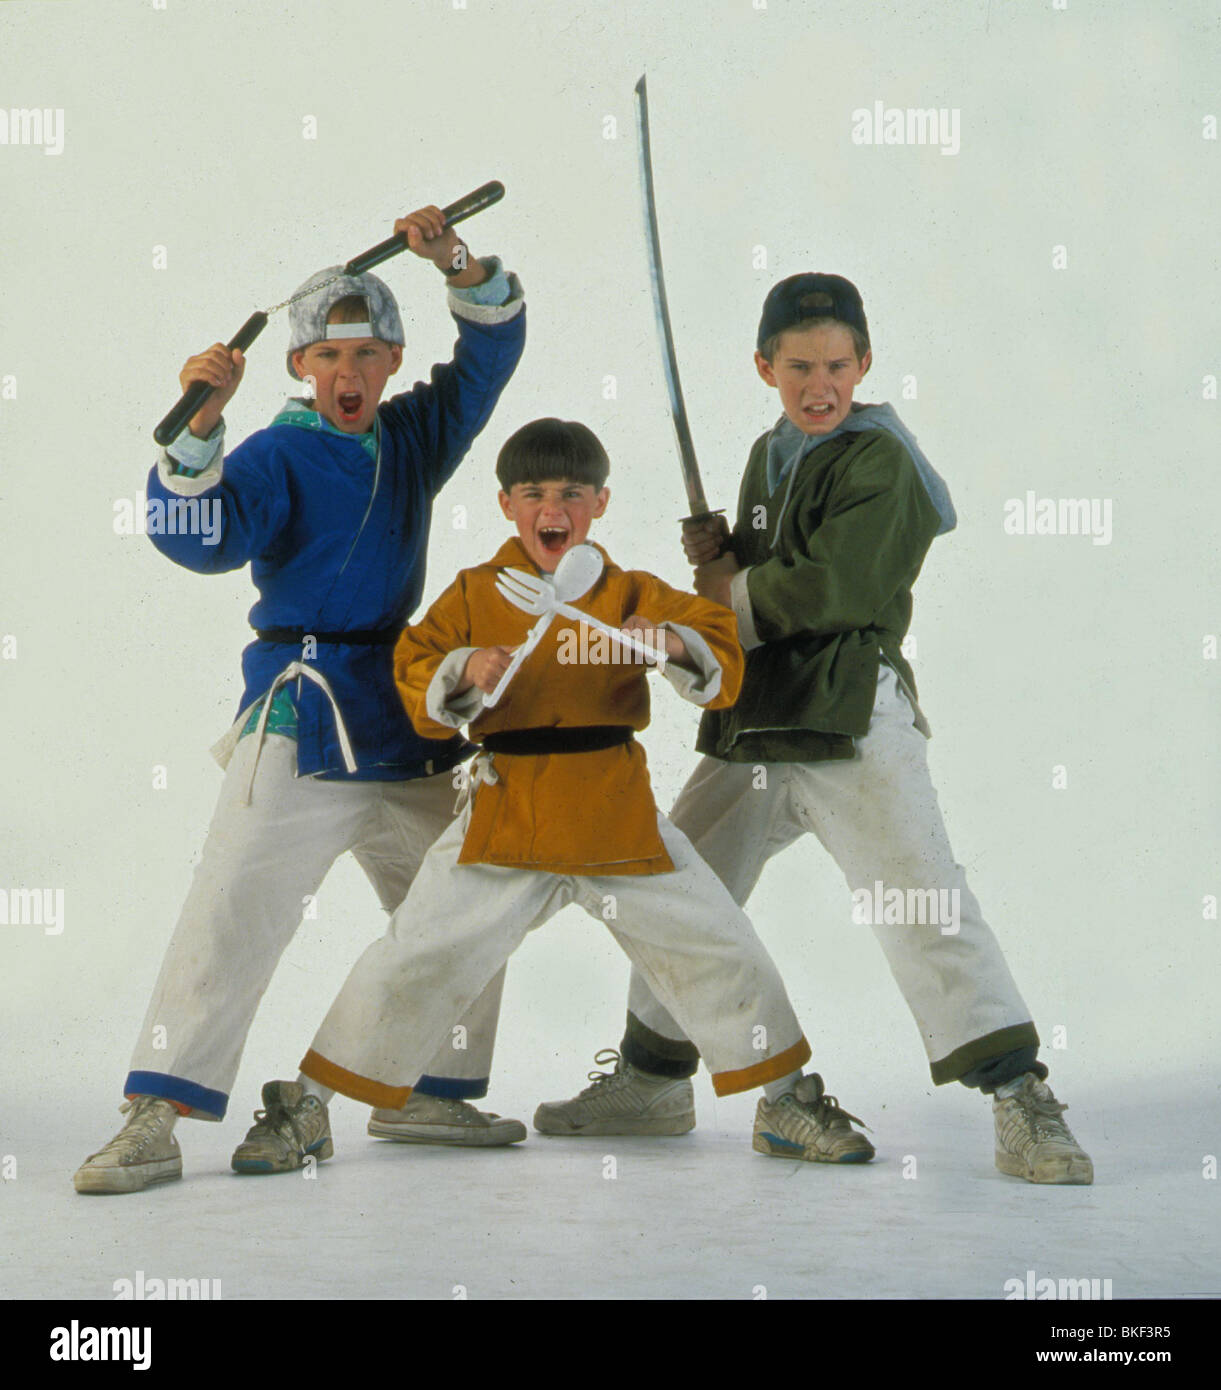 michael treanor 3 ninjas